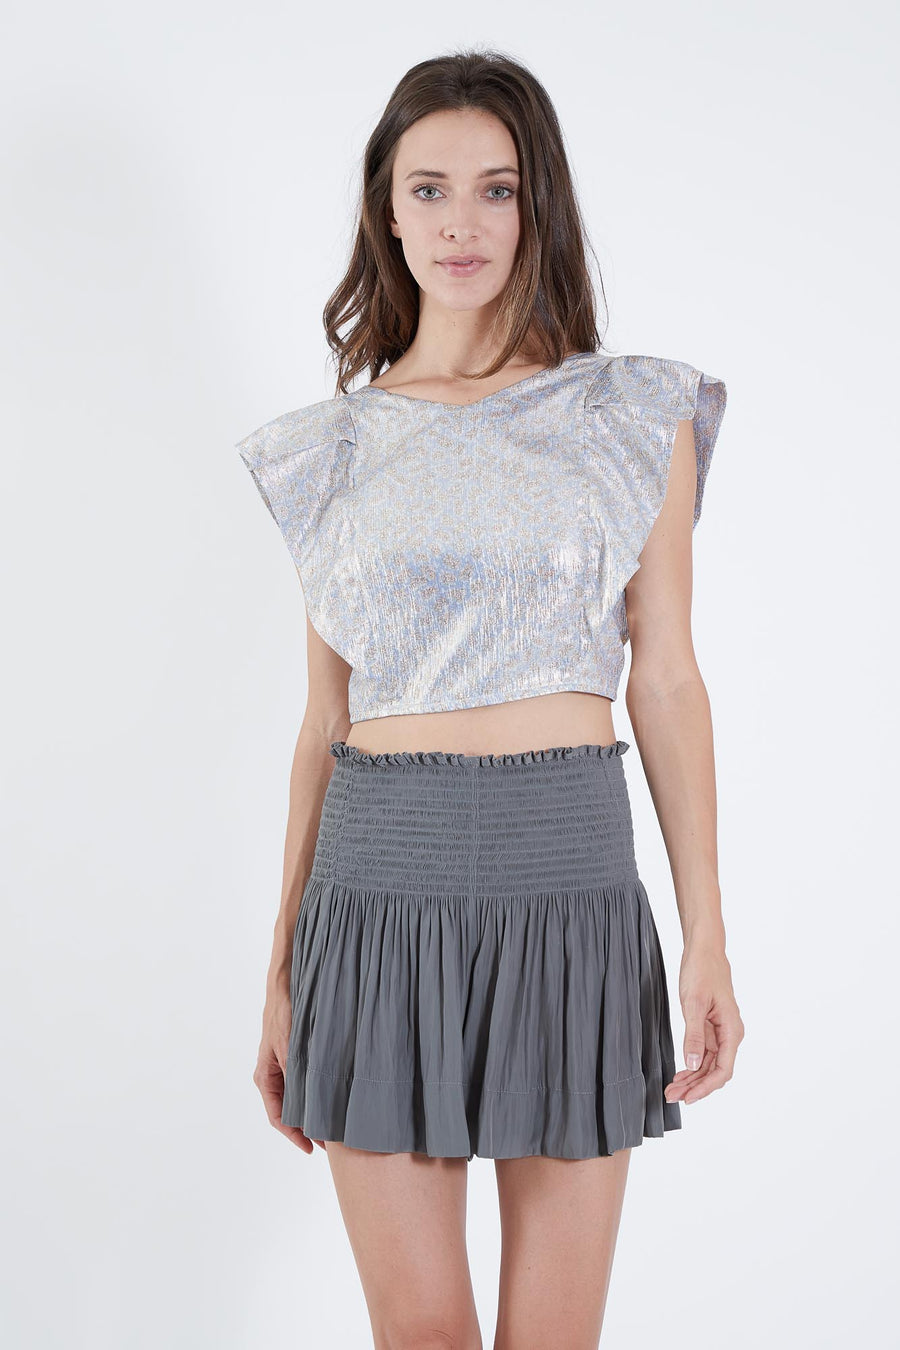 CECILIA TOP SKY METALLIC *LIMITED*EDITION*